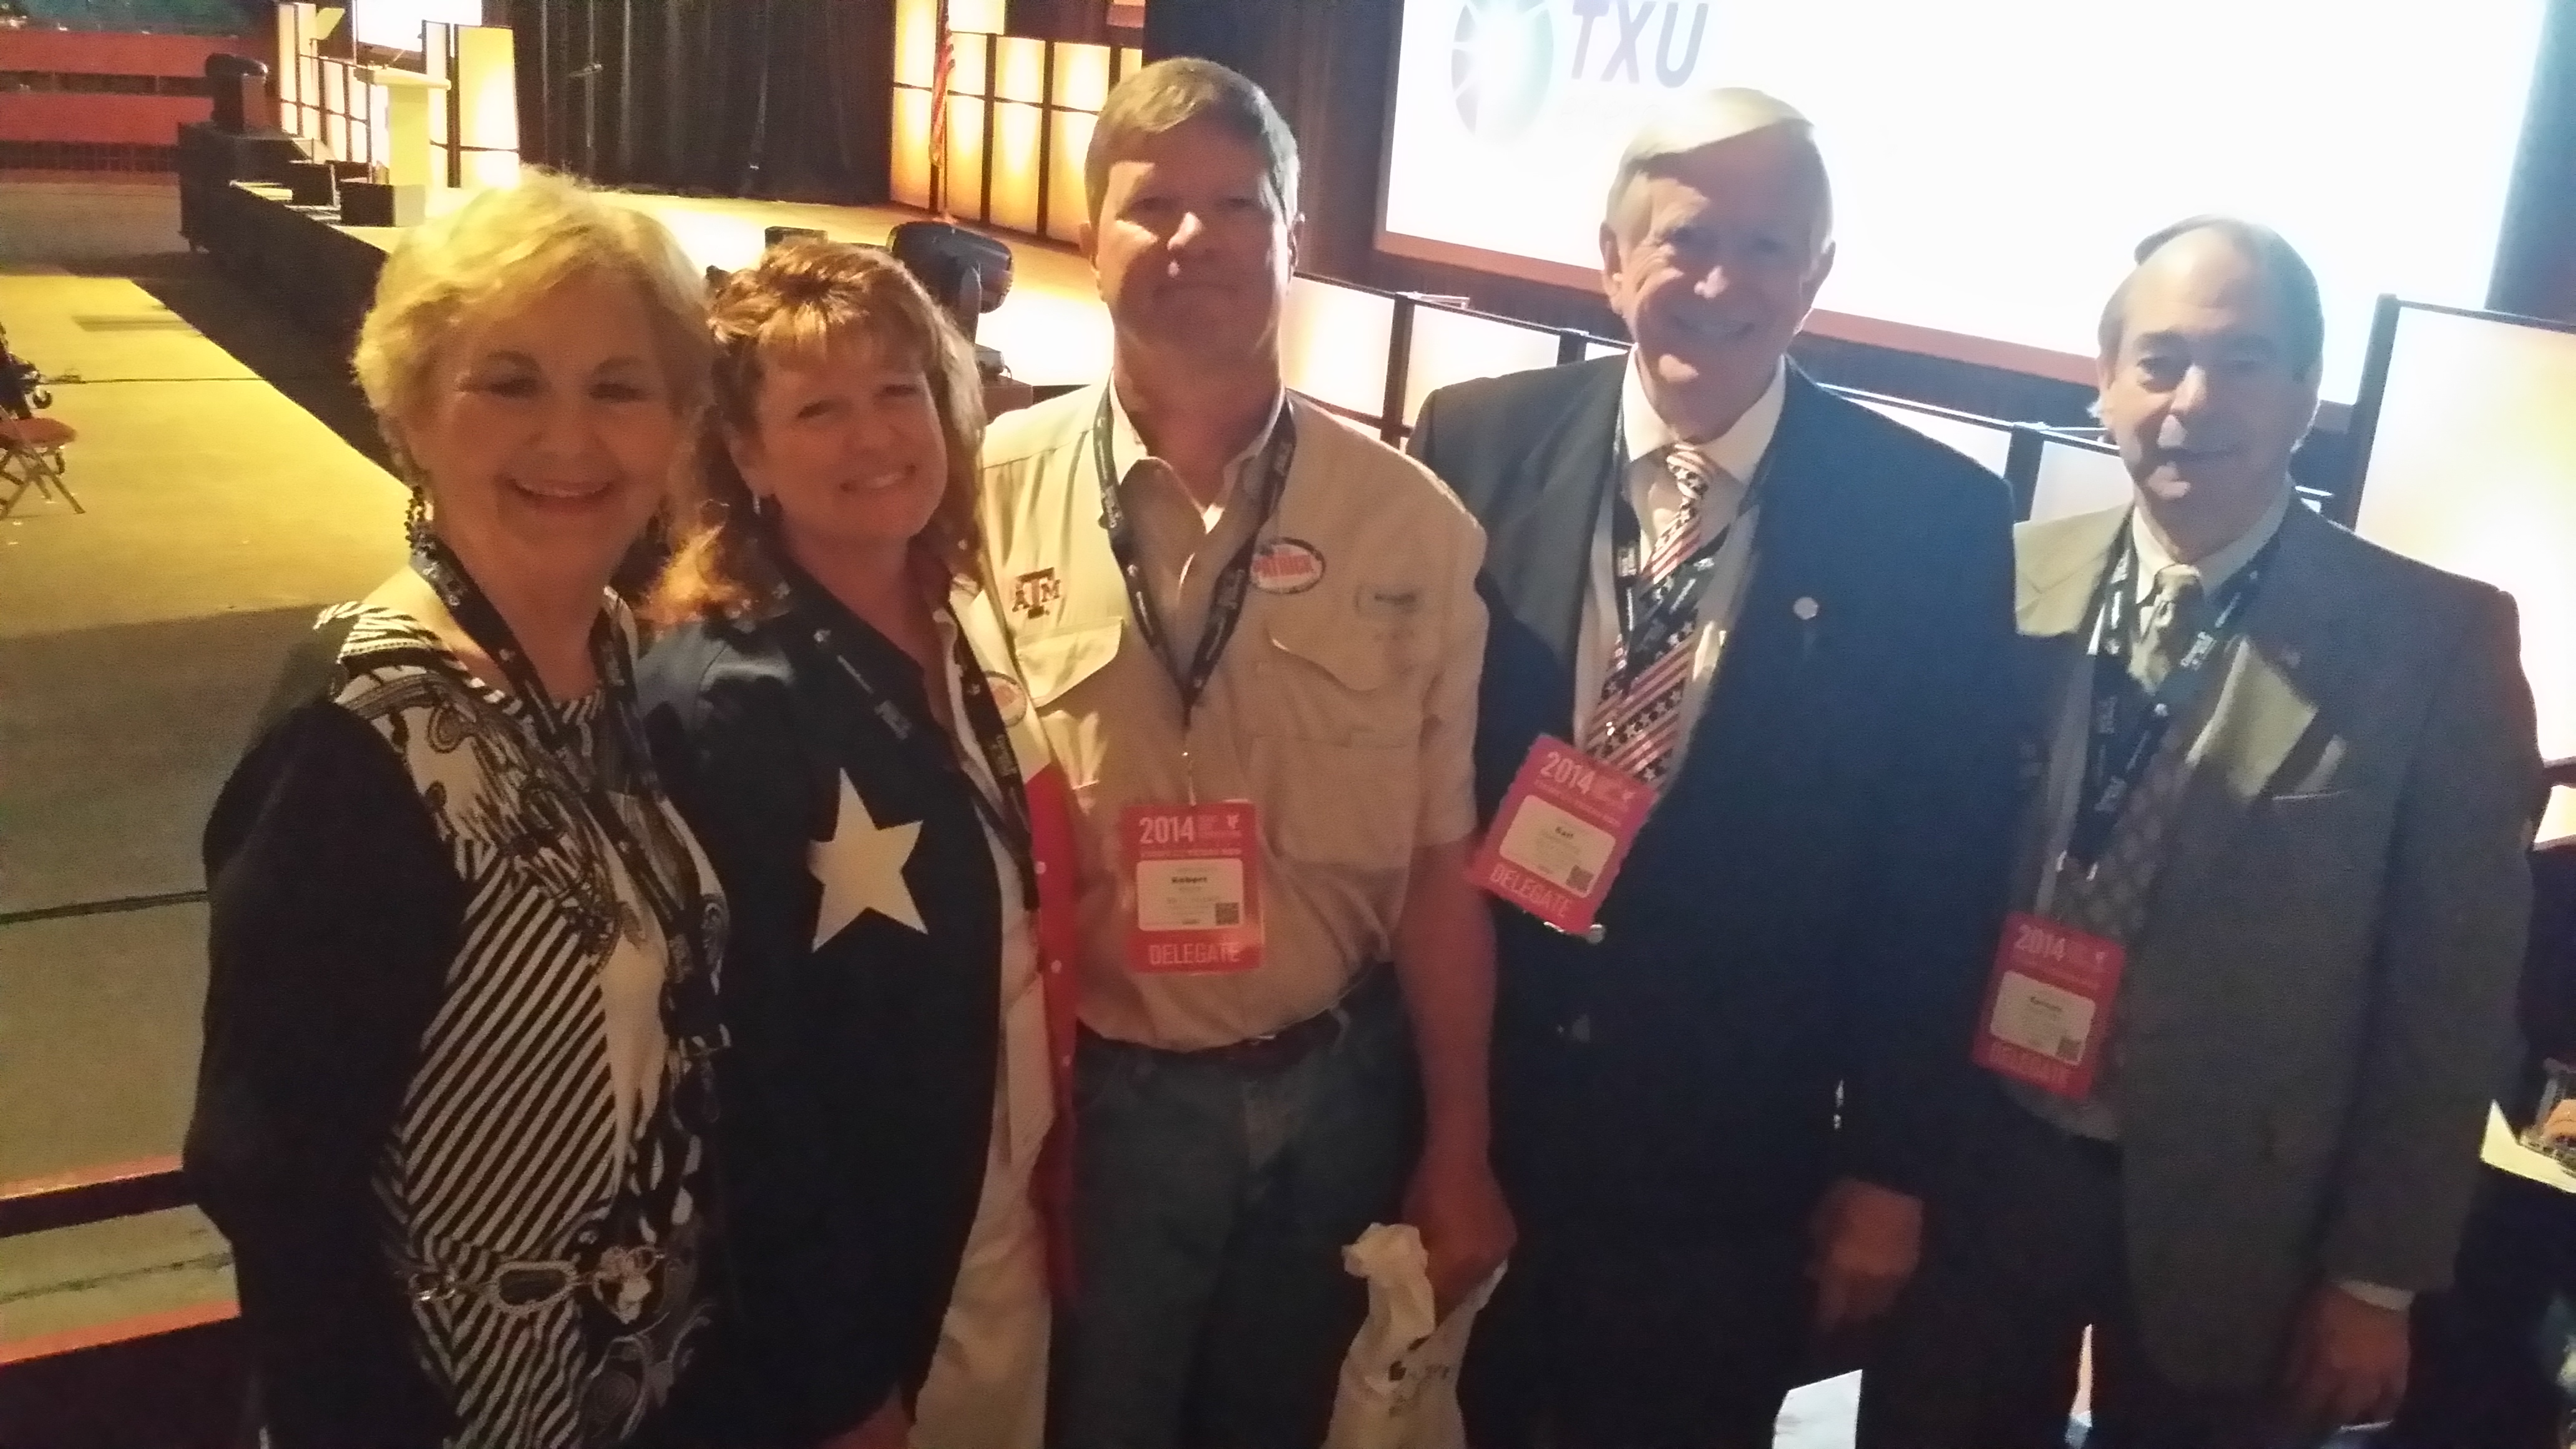 VFV--Texas Republican State Covention 20140607_090312 pct461